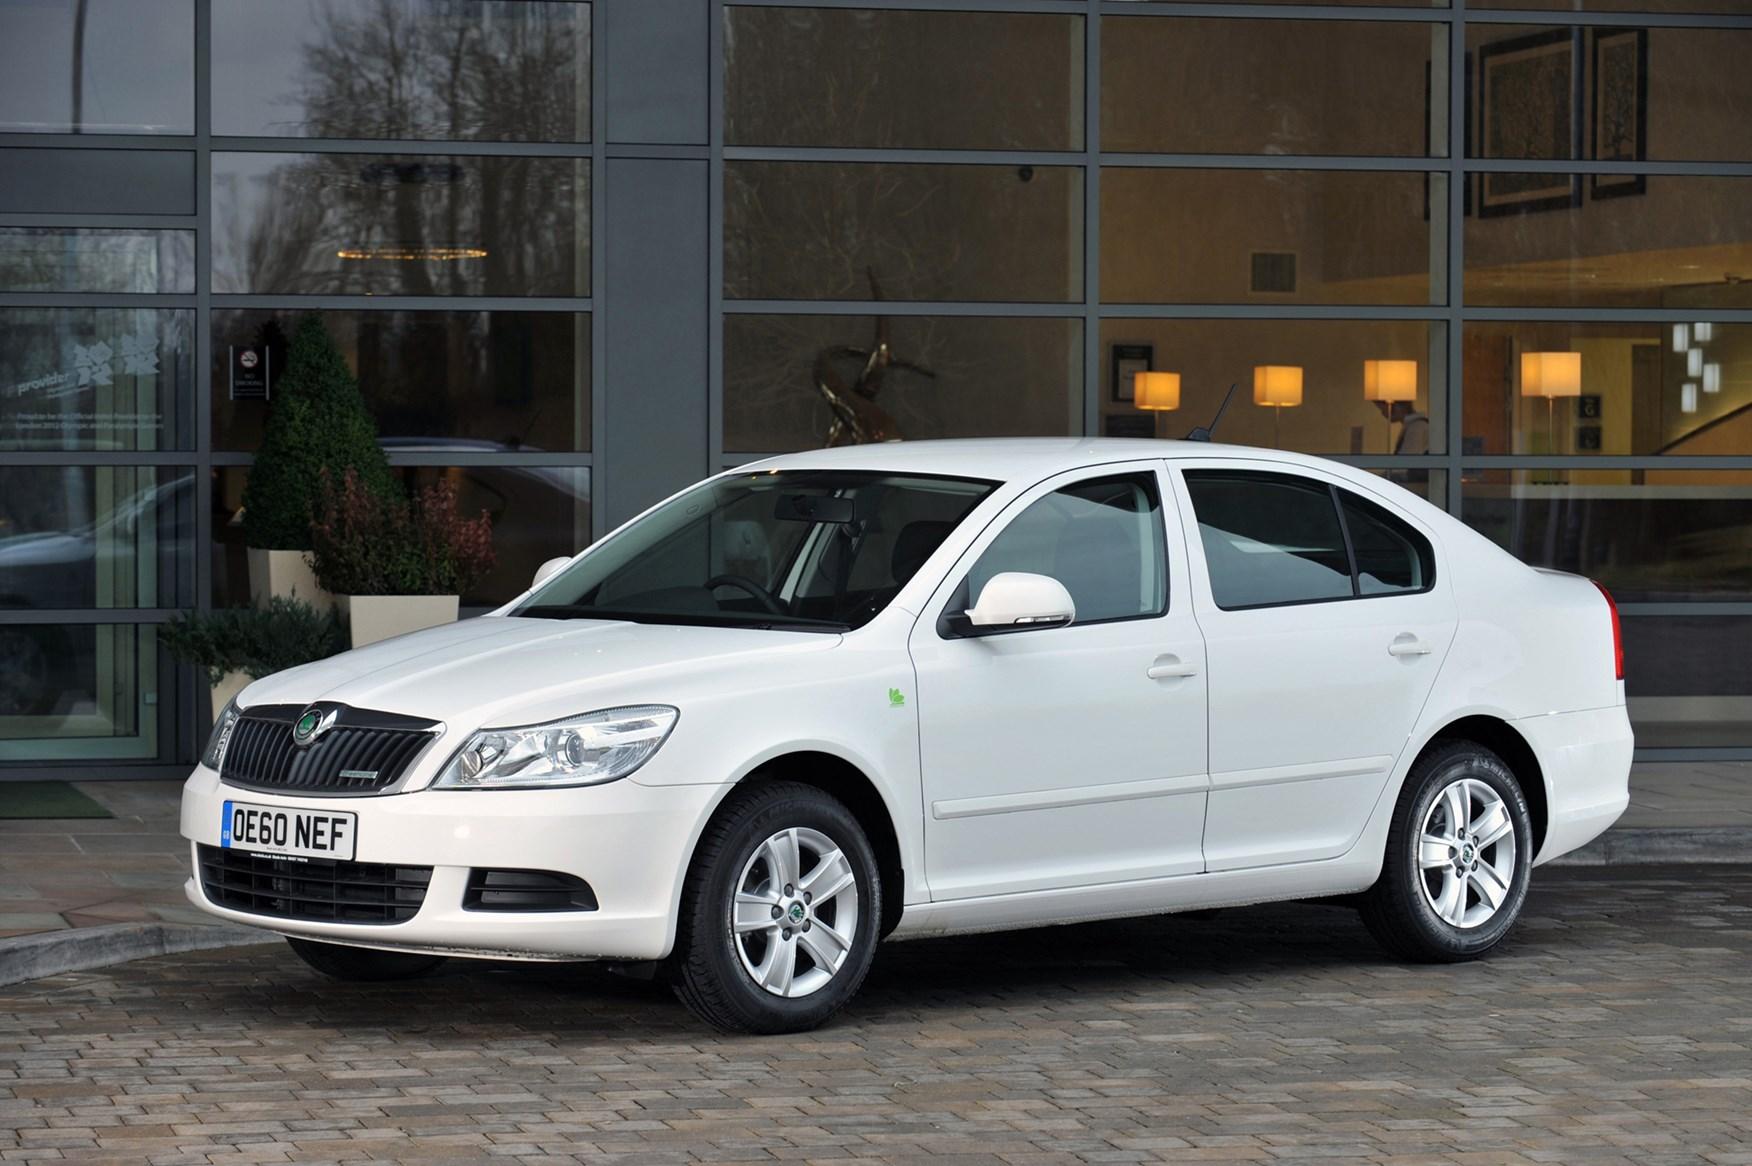 skoda octavia hatchback review 2004 2012 parkers. Black Bedroom Furniture Sets. Home Design Ideas